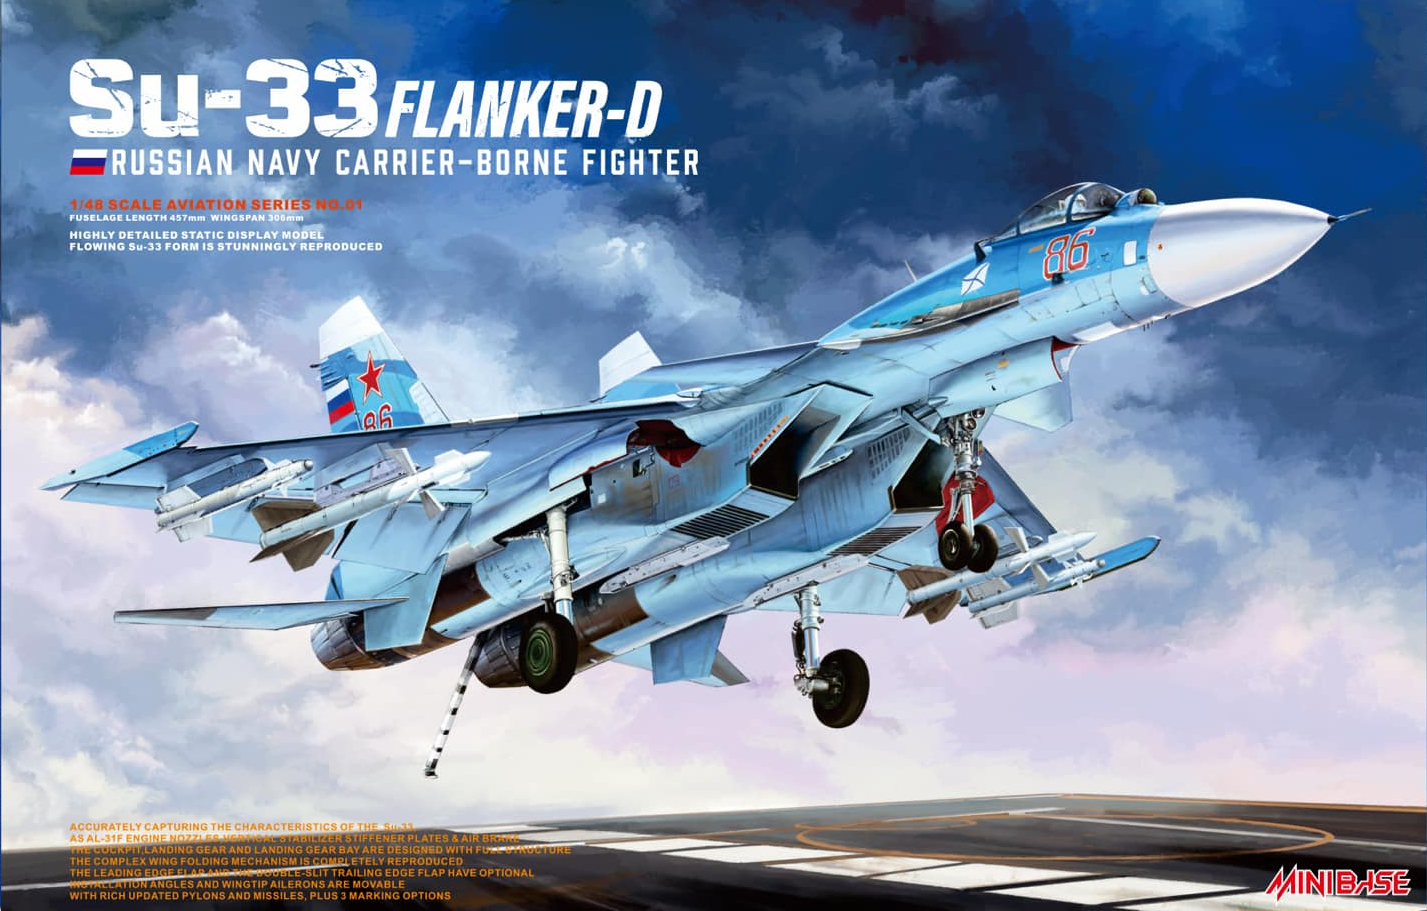 Minibase 1/48 SU-33 Flanker-D, Russian Navy Carrier-Borne Fighter Aircraft